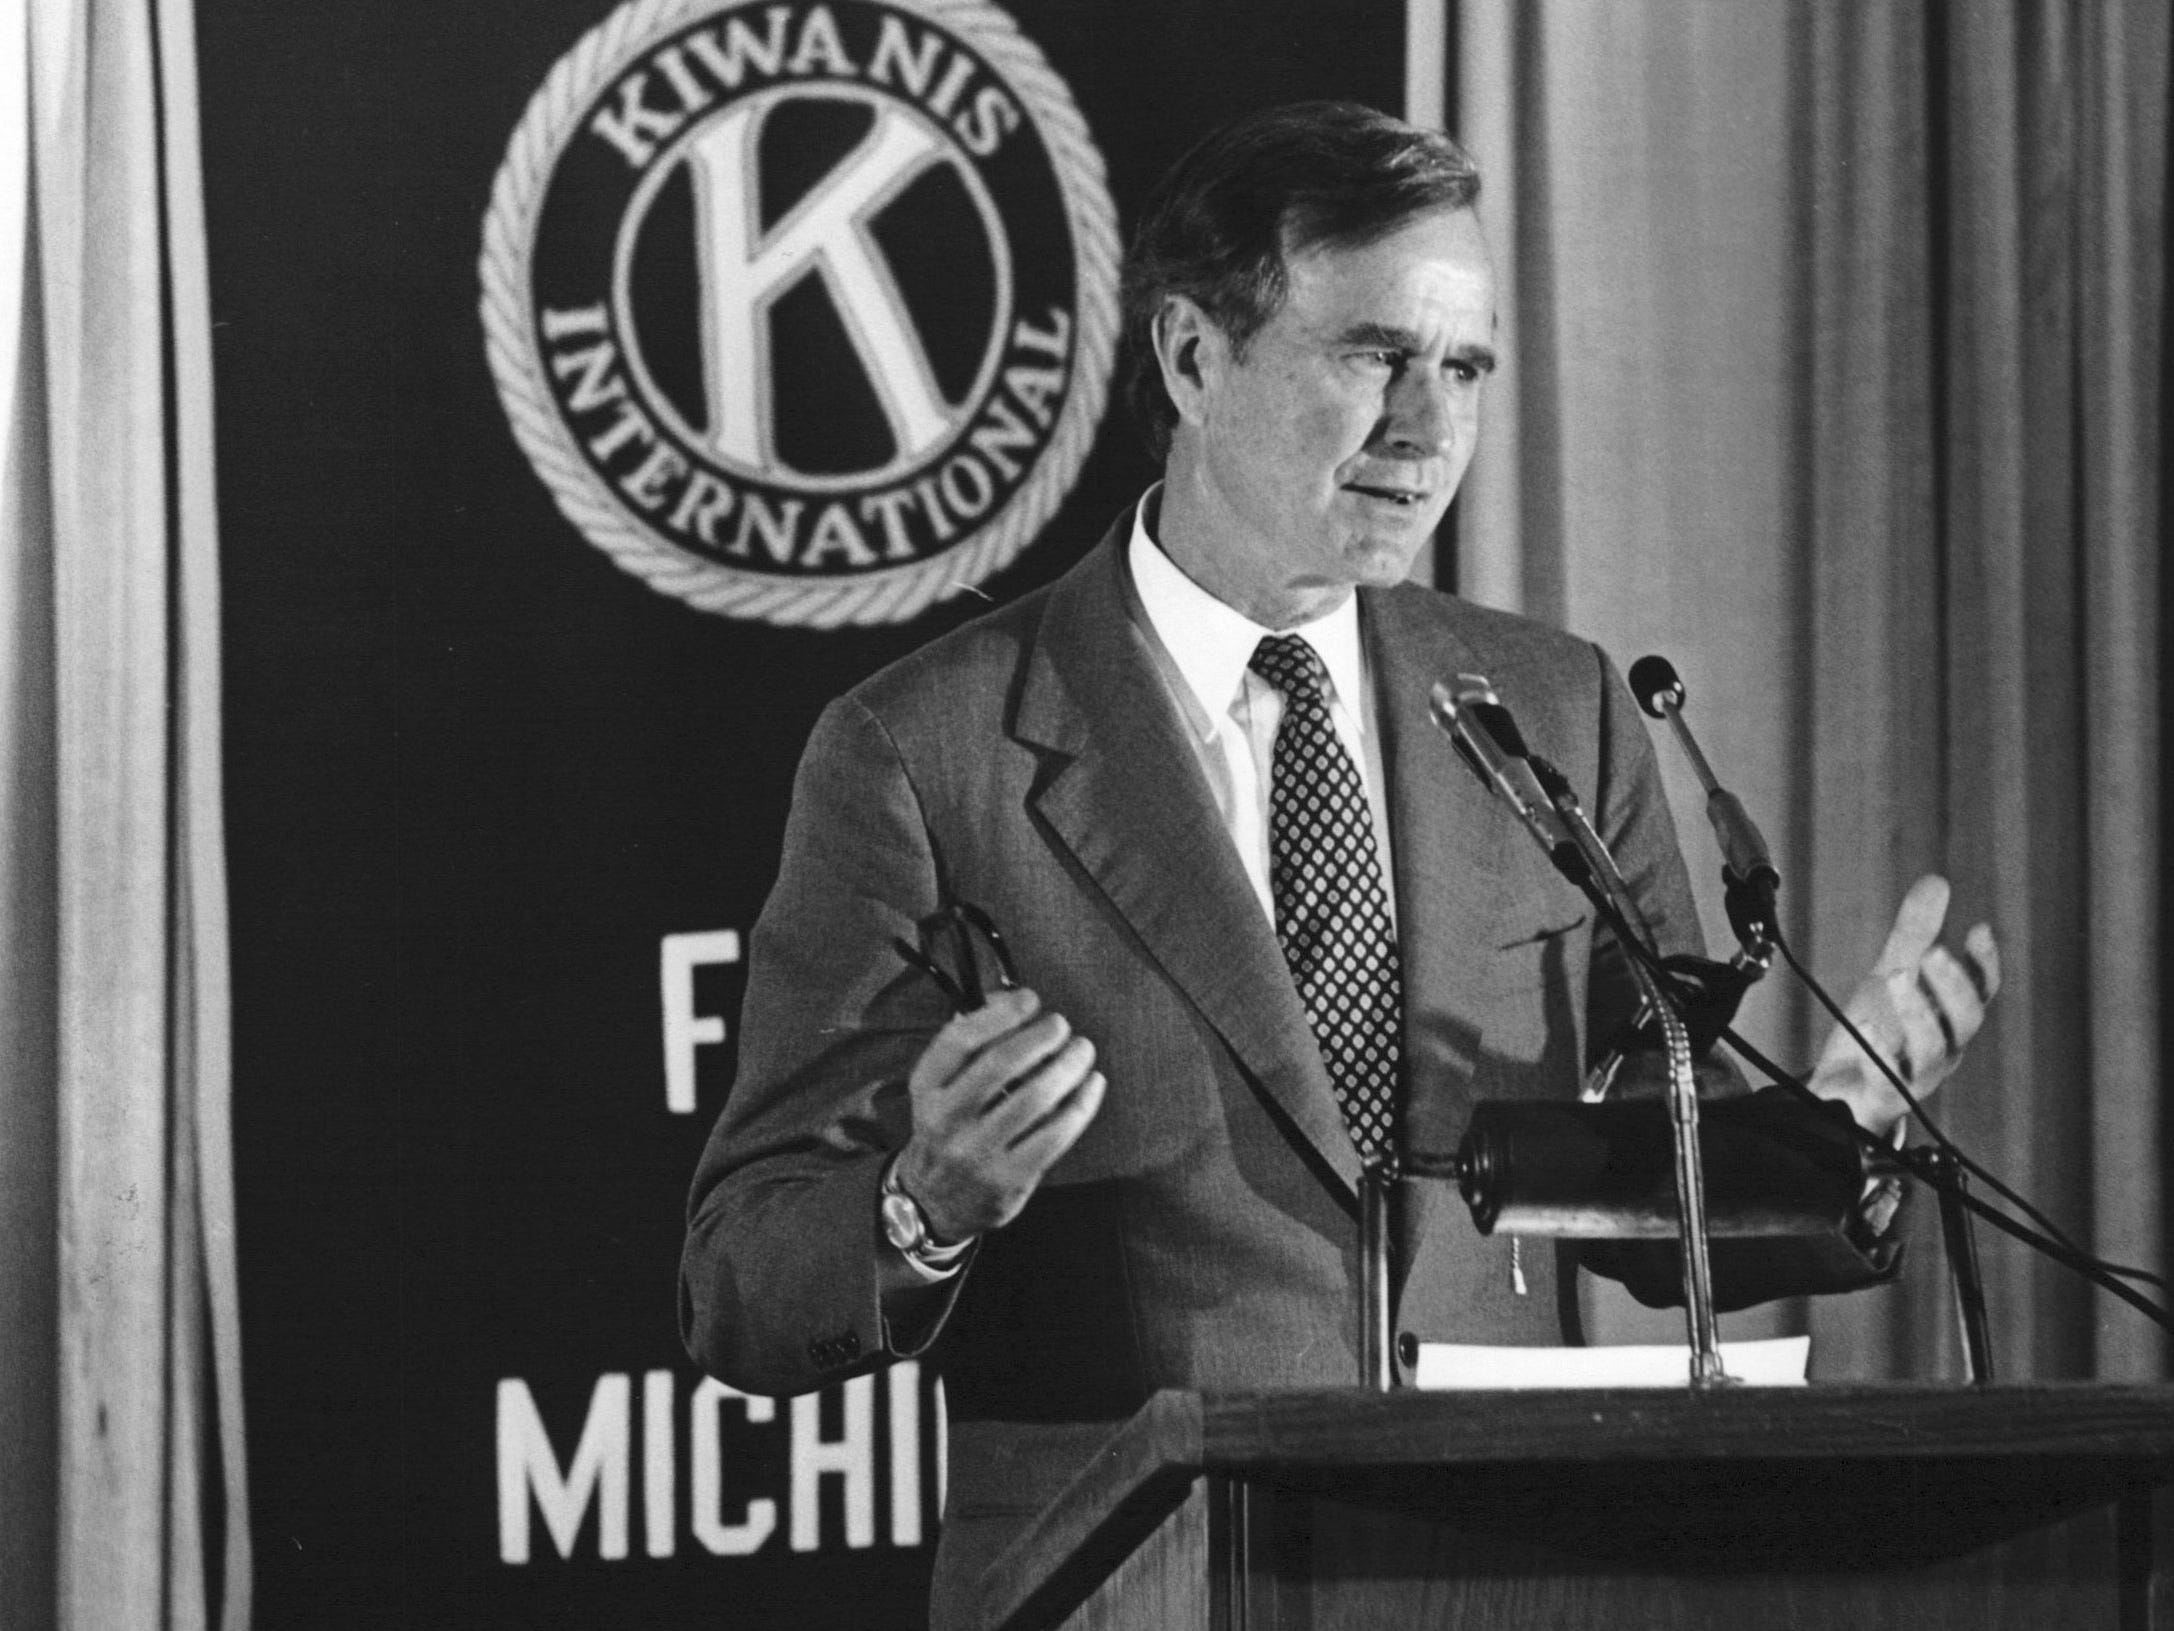 George H.W. Bush gives a speech to the Kiwanis Club of Flint, Michigan. in September 1980.